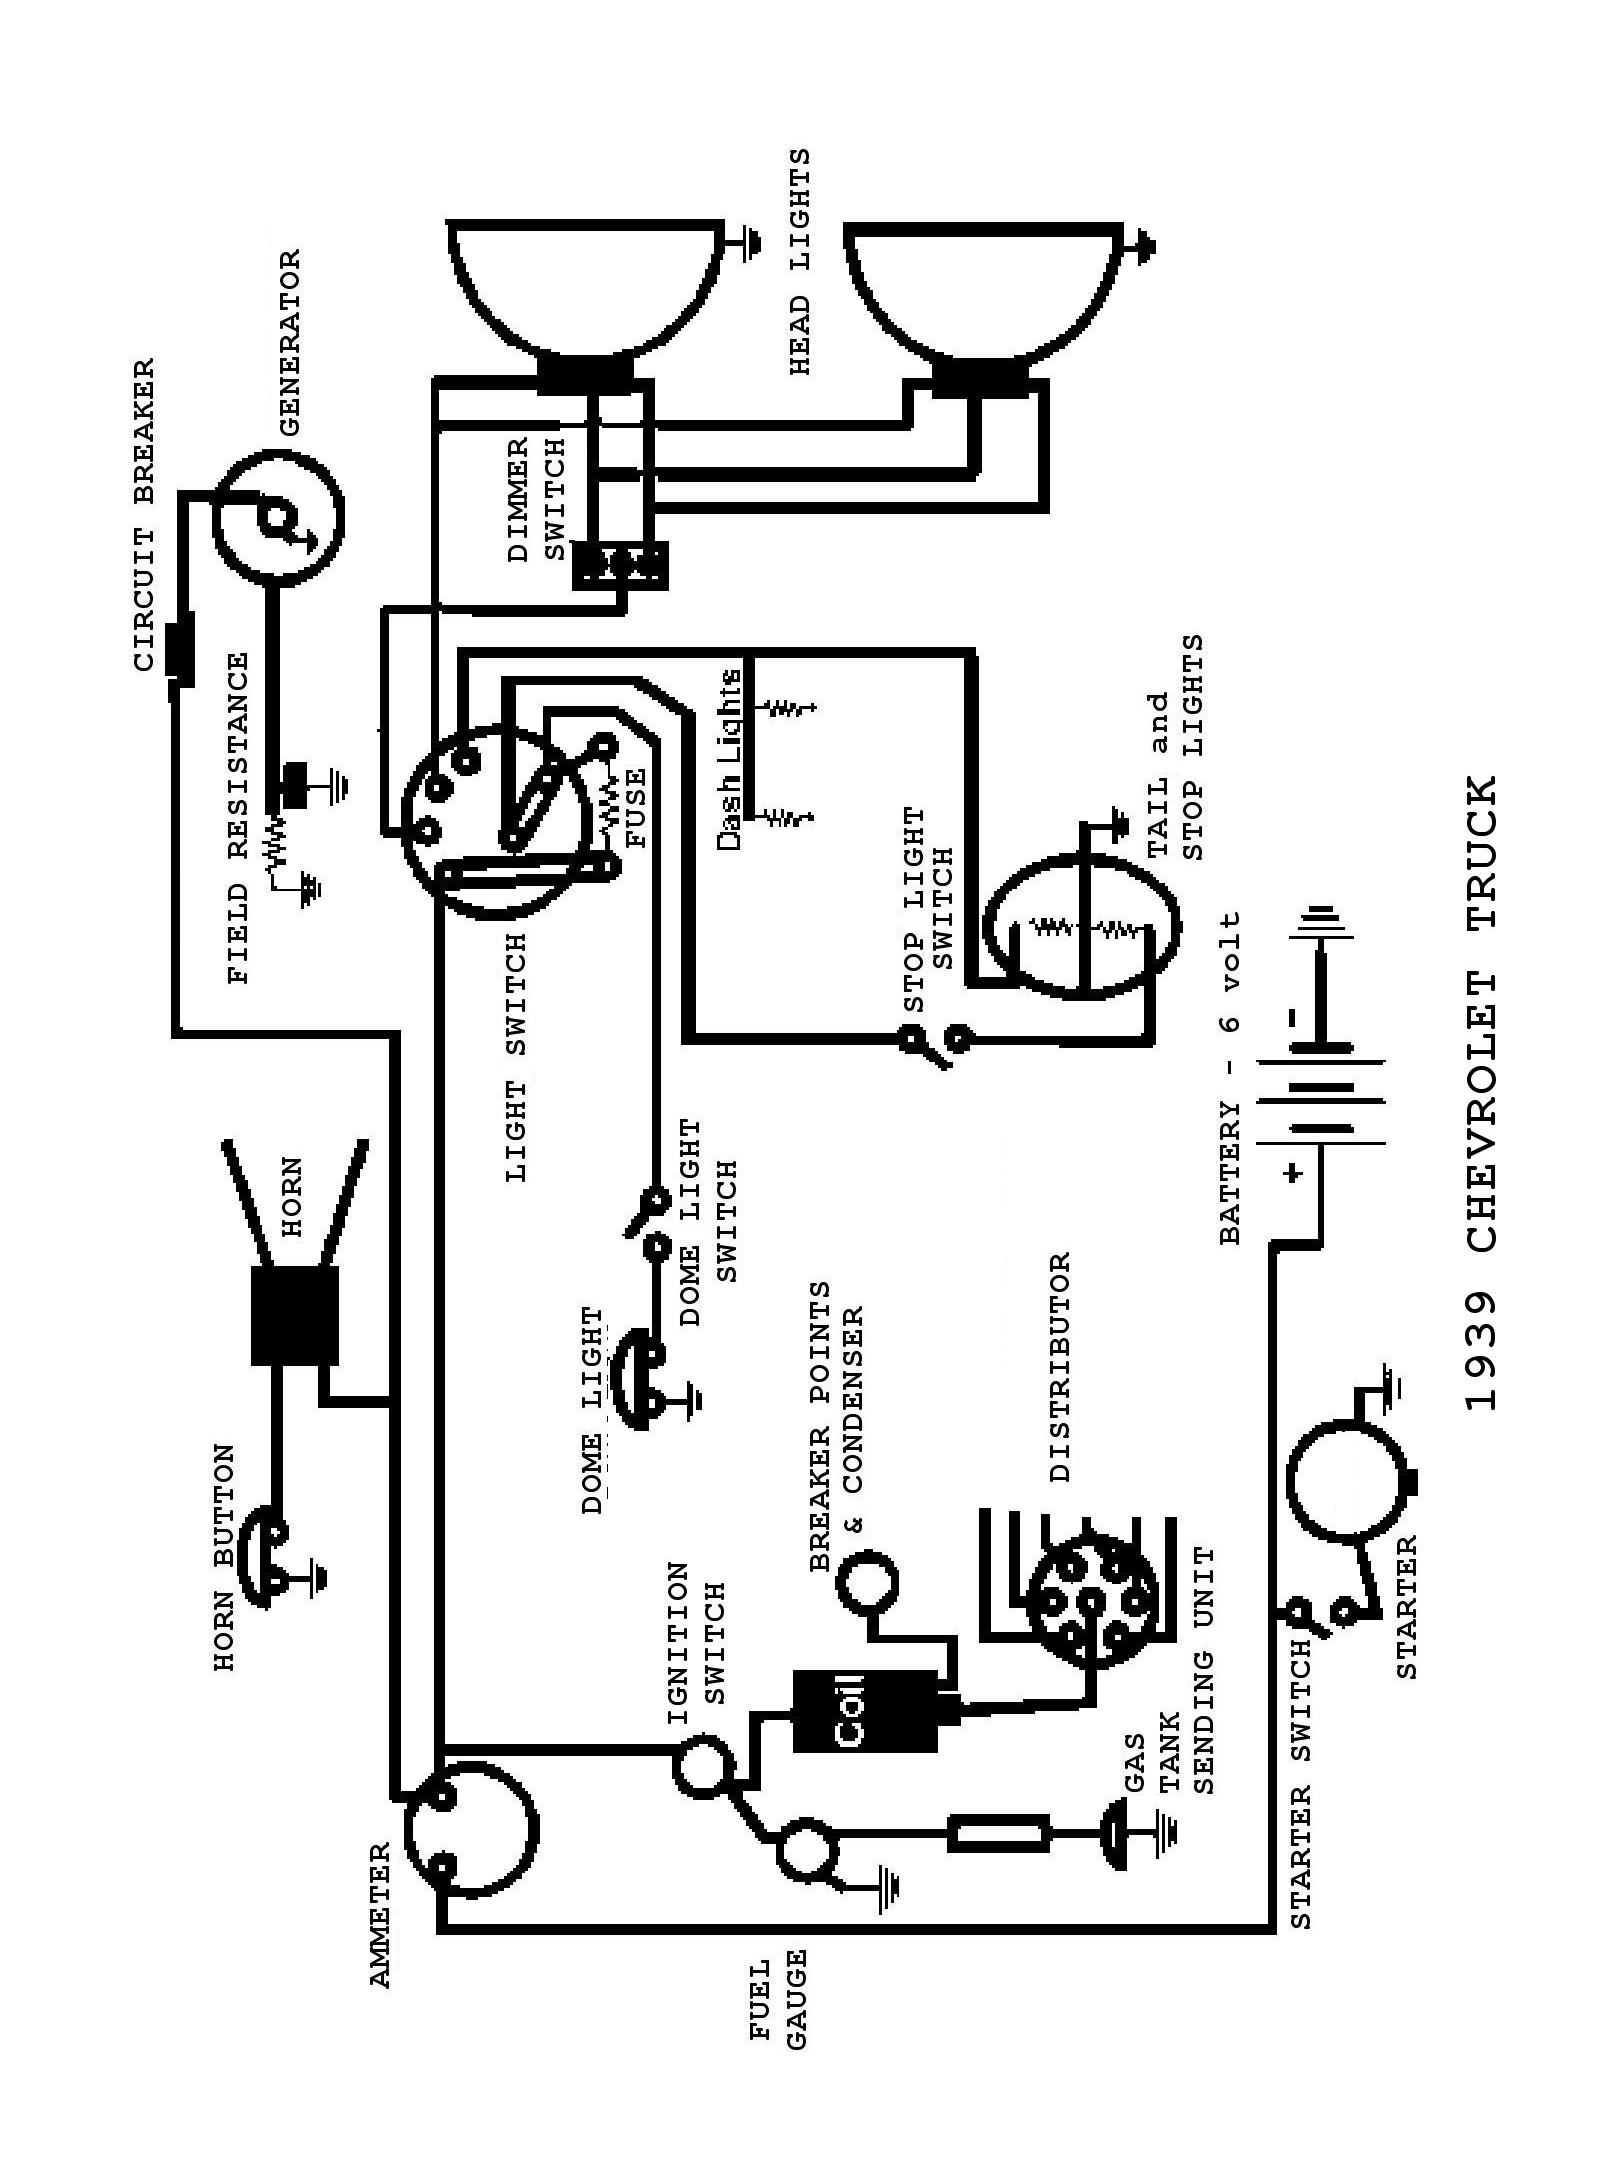 Trailer Light Plug Wiring Harness 7 Way as well 2000 F650 Fuse Box Diagram further Wiring together with WiringByColor likewise Schematics f. on ford truck wiring schematics